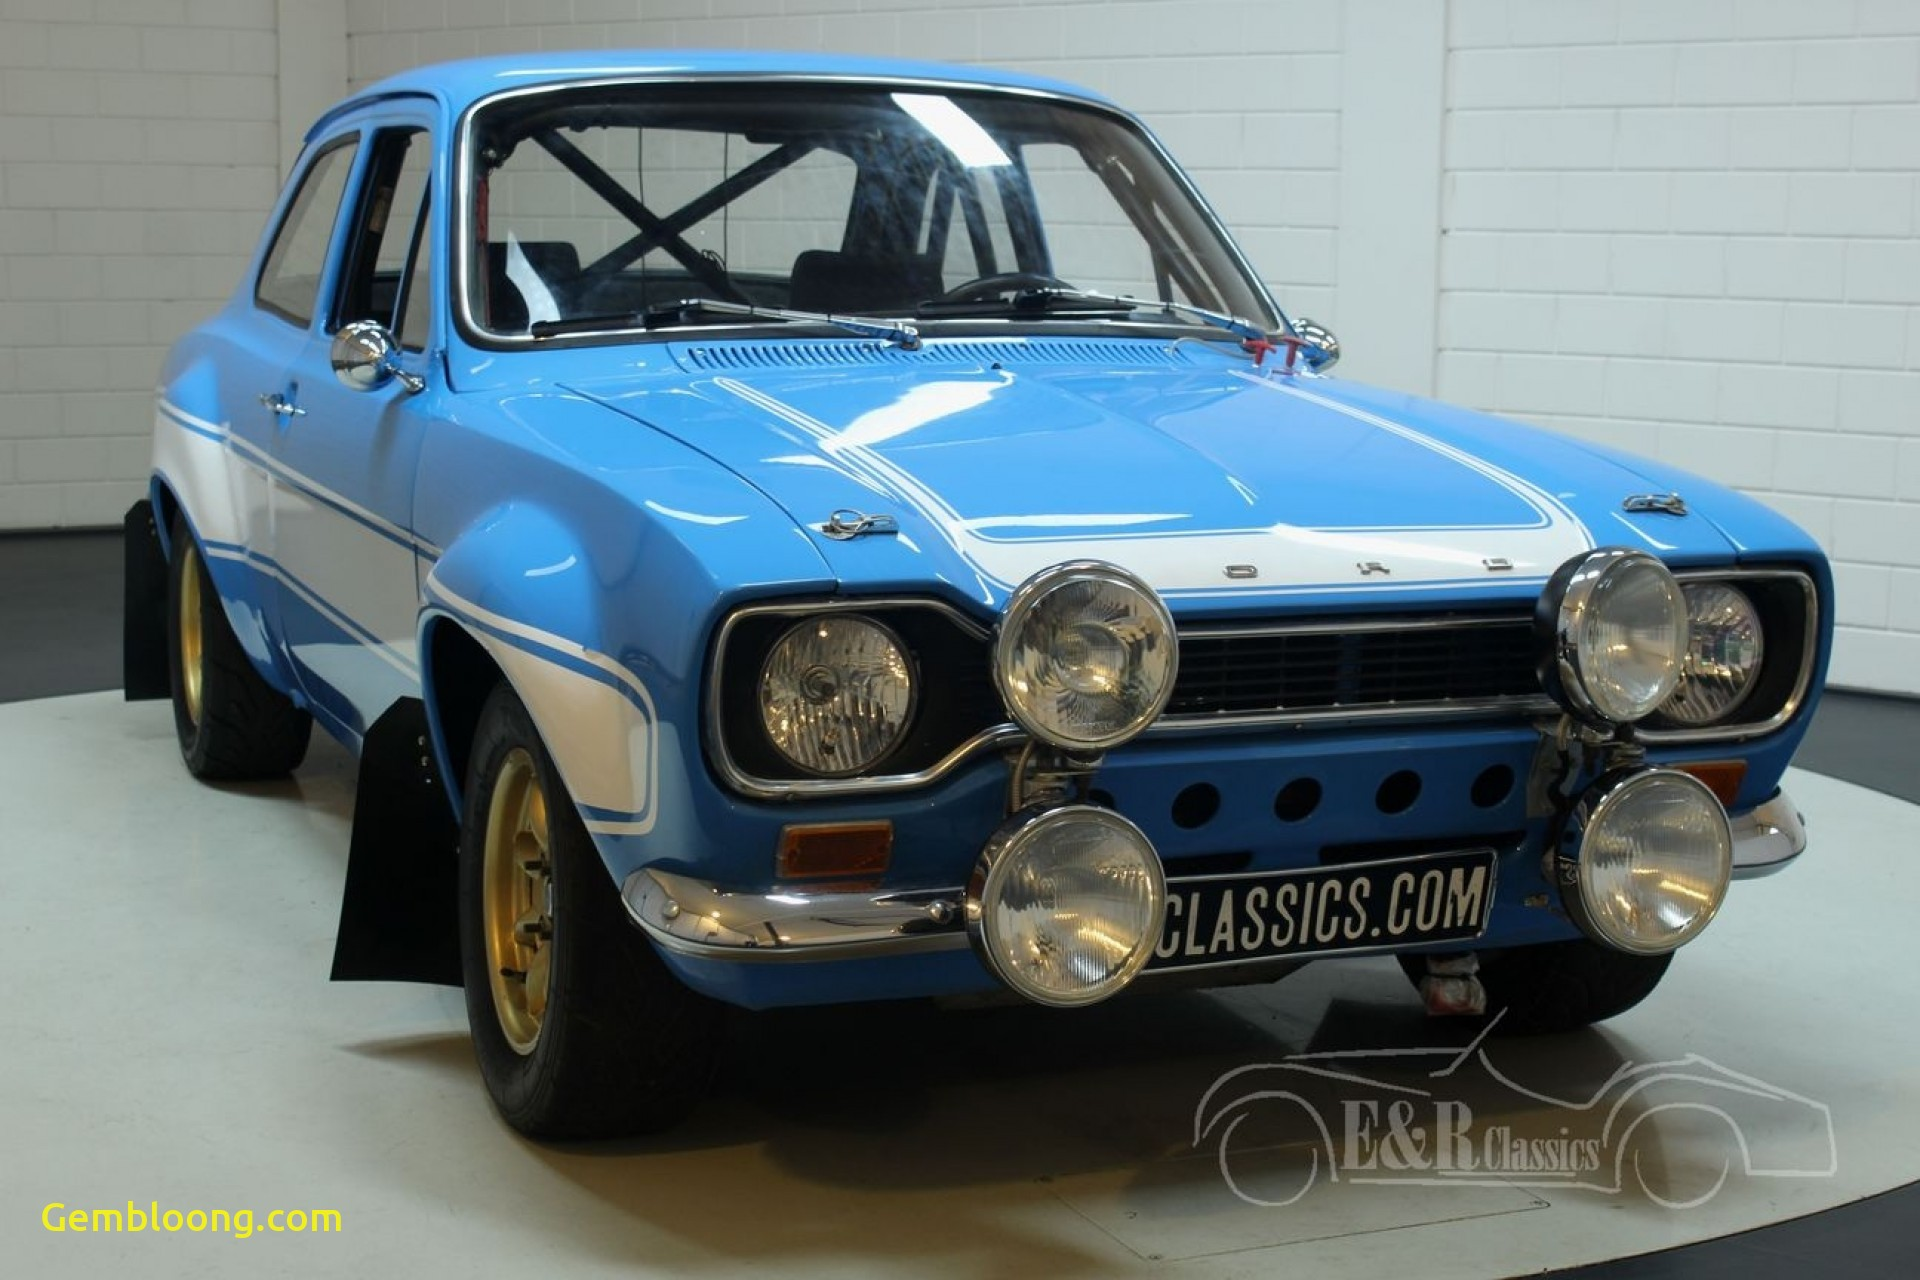 Ford Escort for Sale Lovely ford Escort Mk1 1969 for Sale at Erclassics